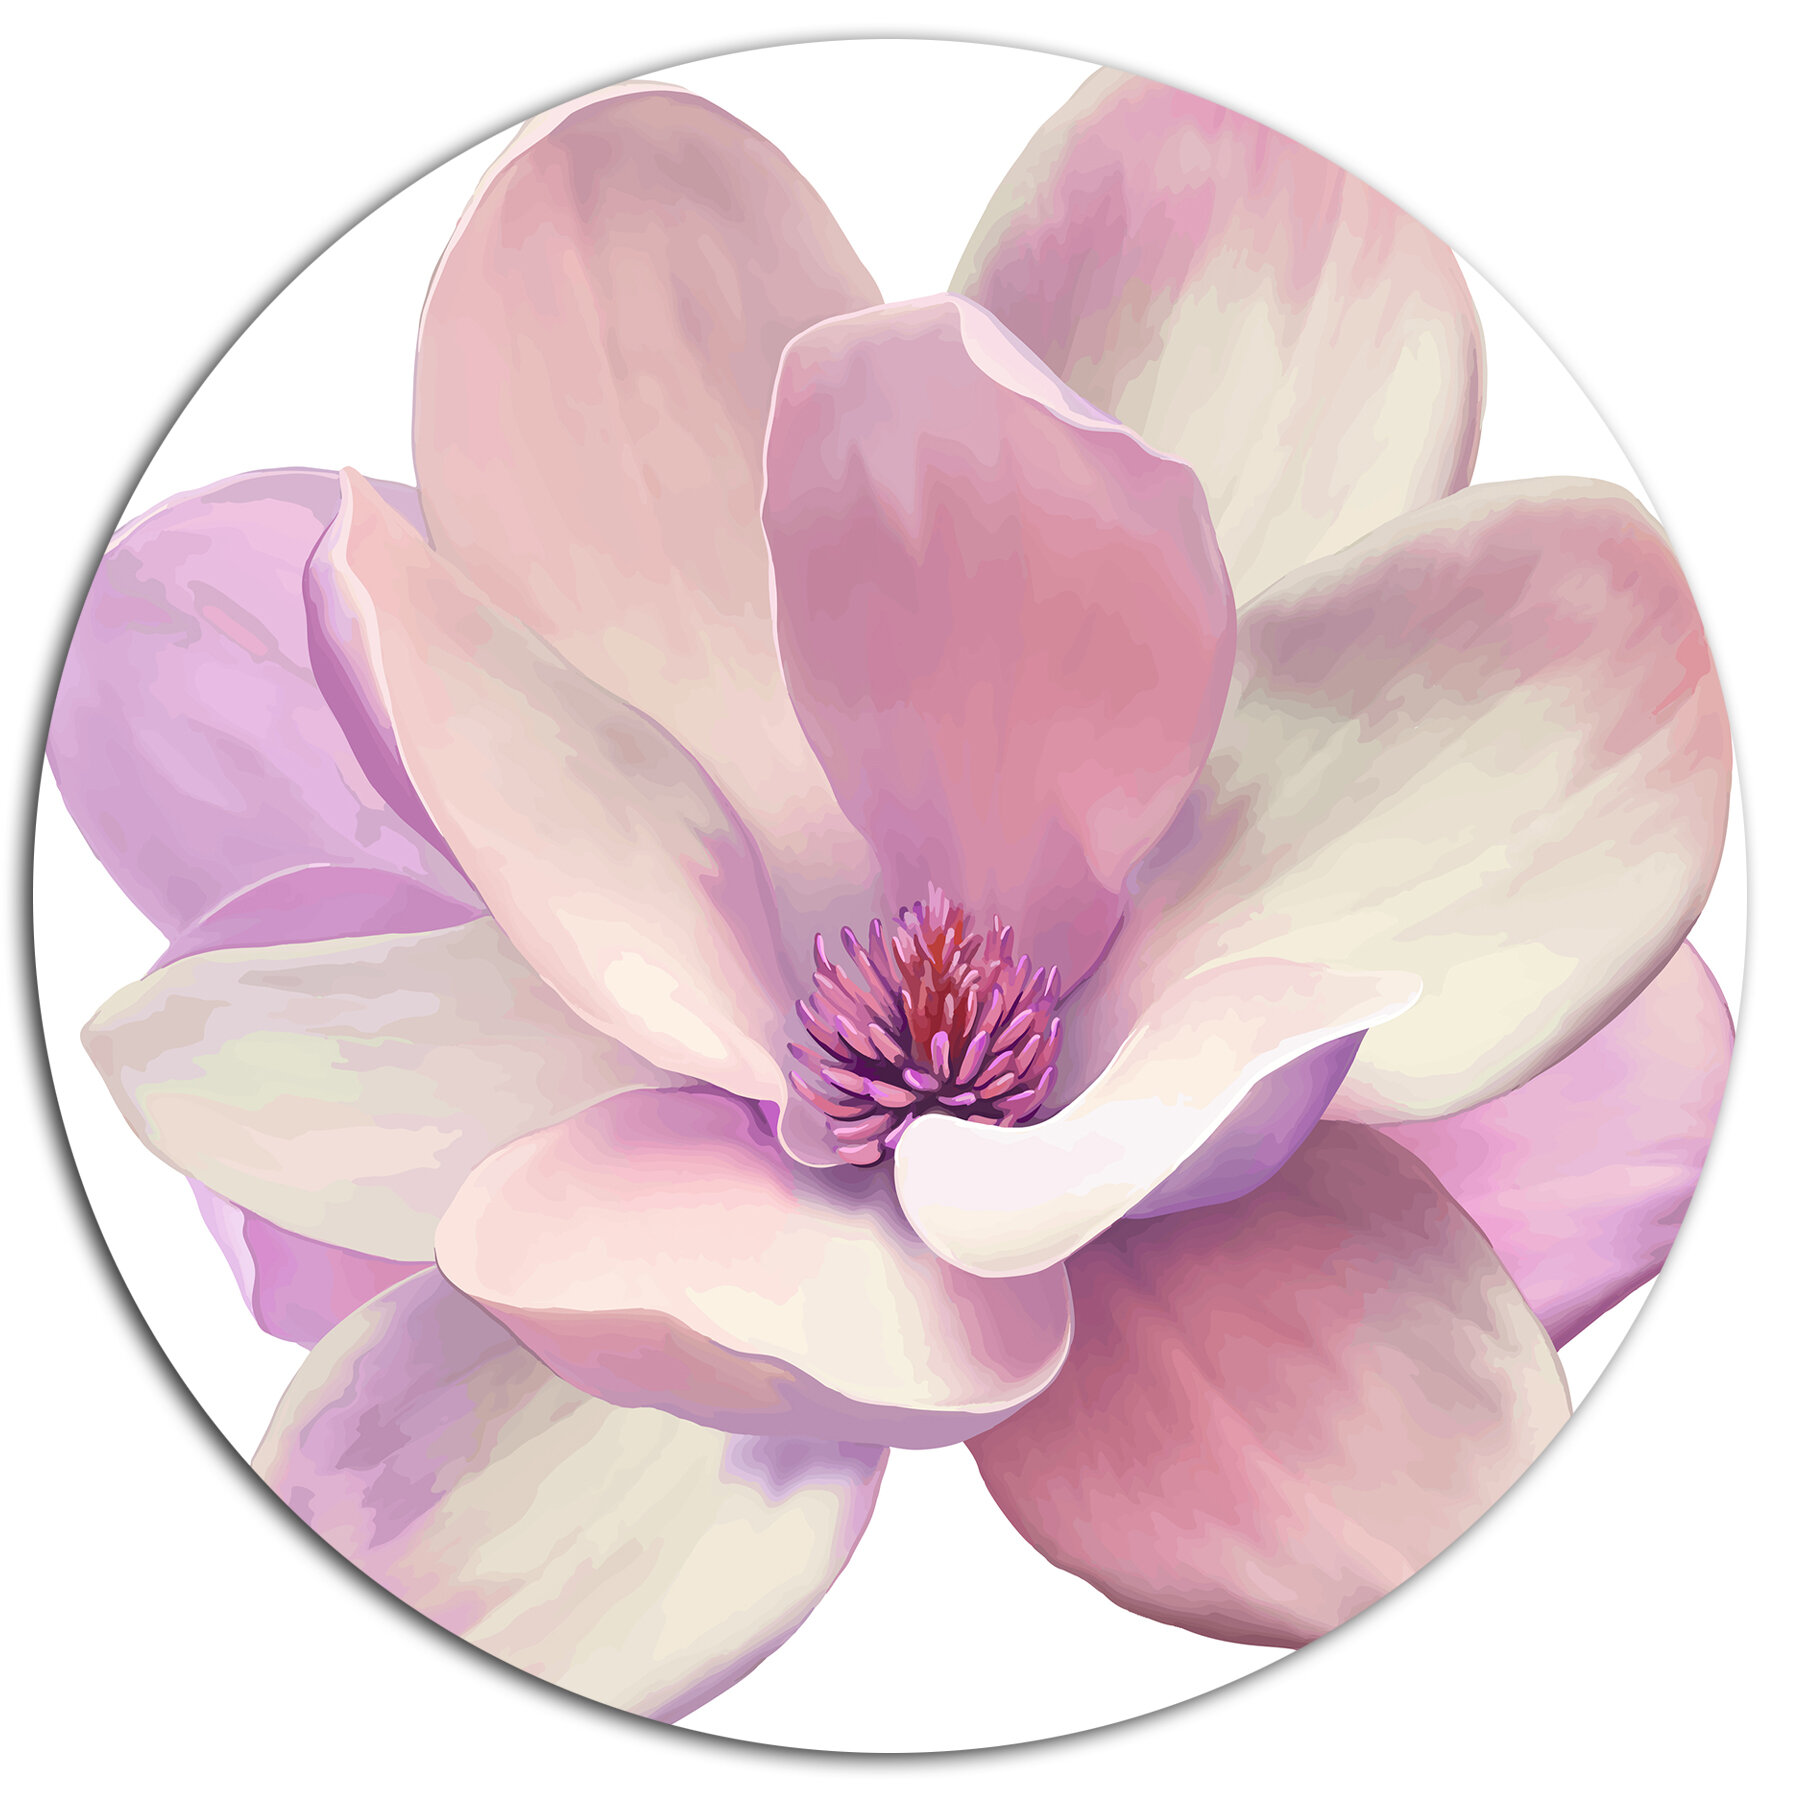 Designart Cute Light Pink Magnolia Flower Oil Painting Print On